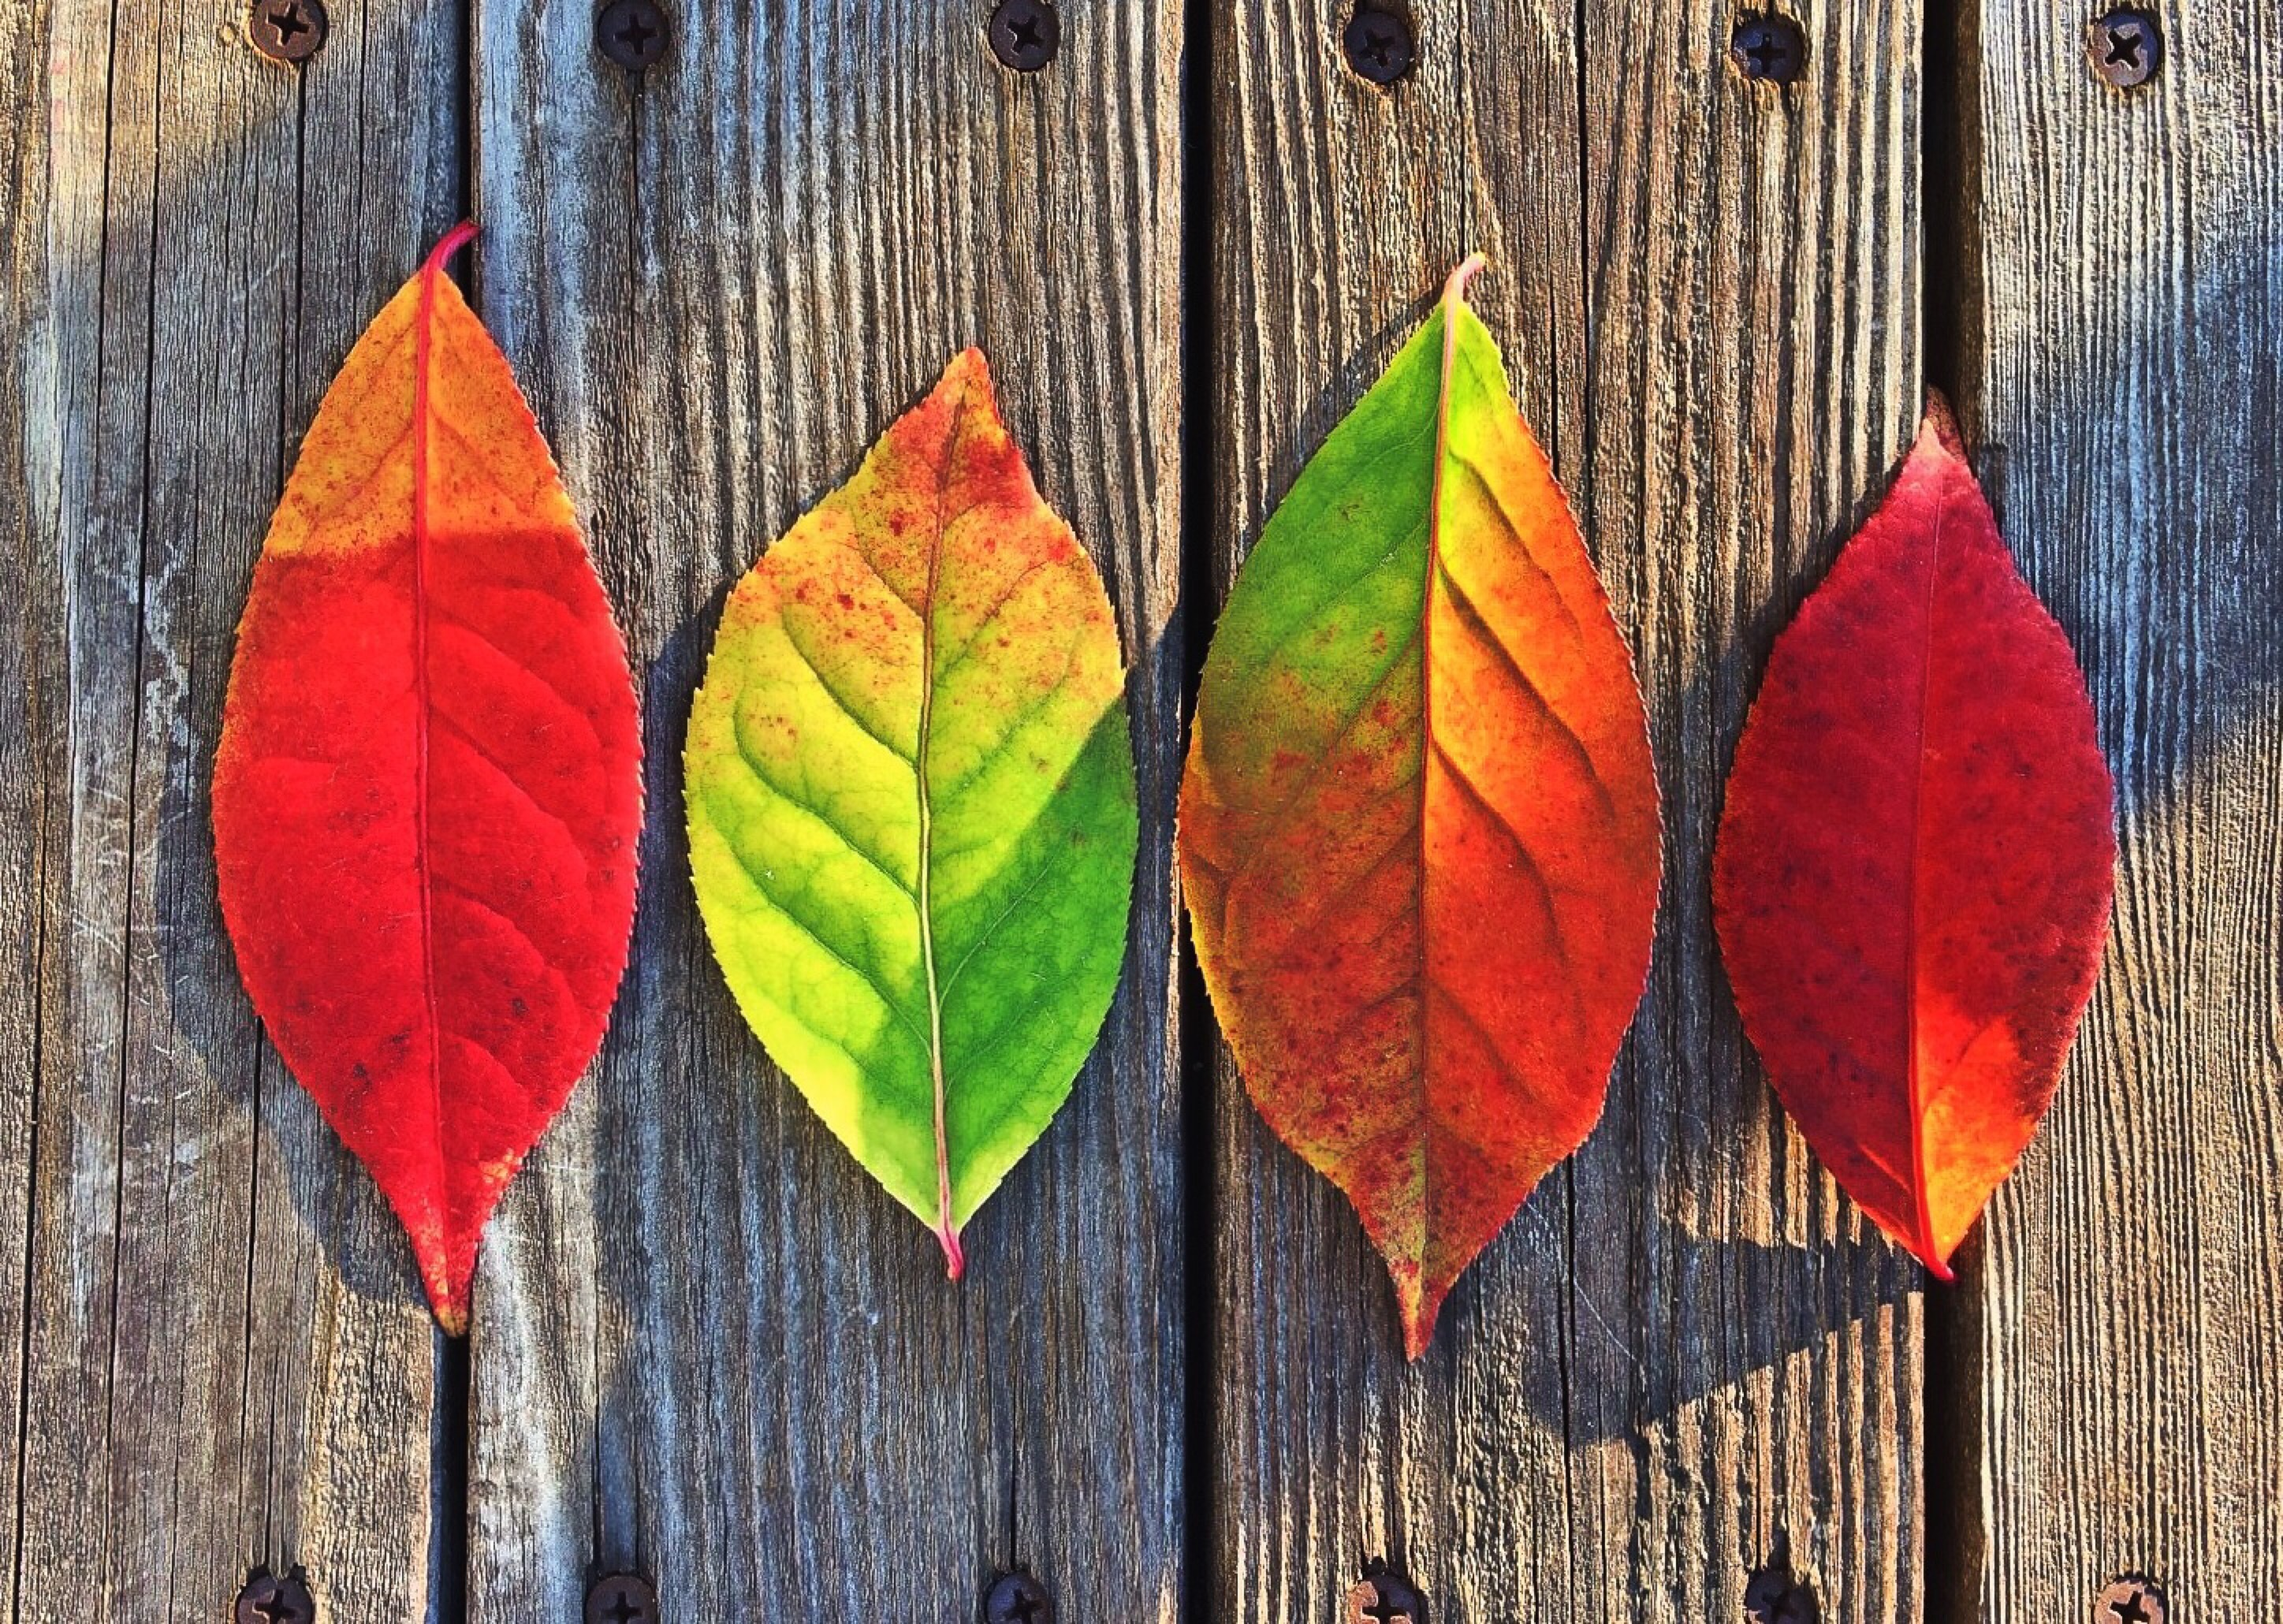 Why do leaves change different colors in the fall? -